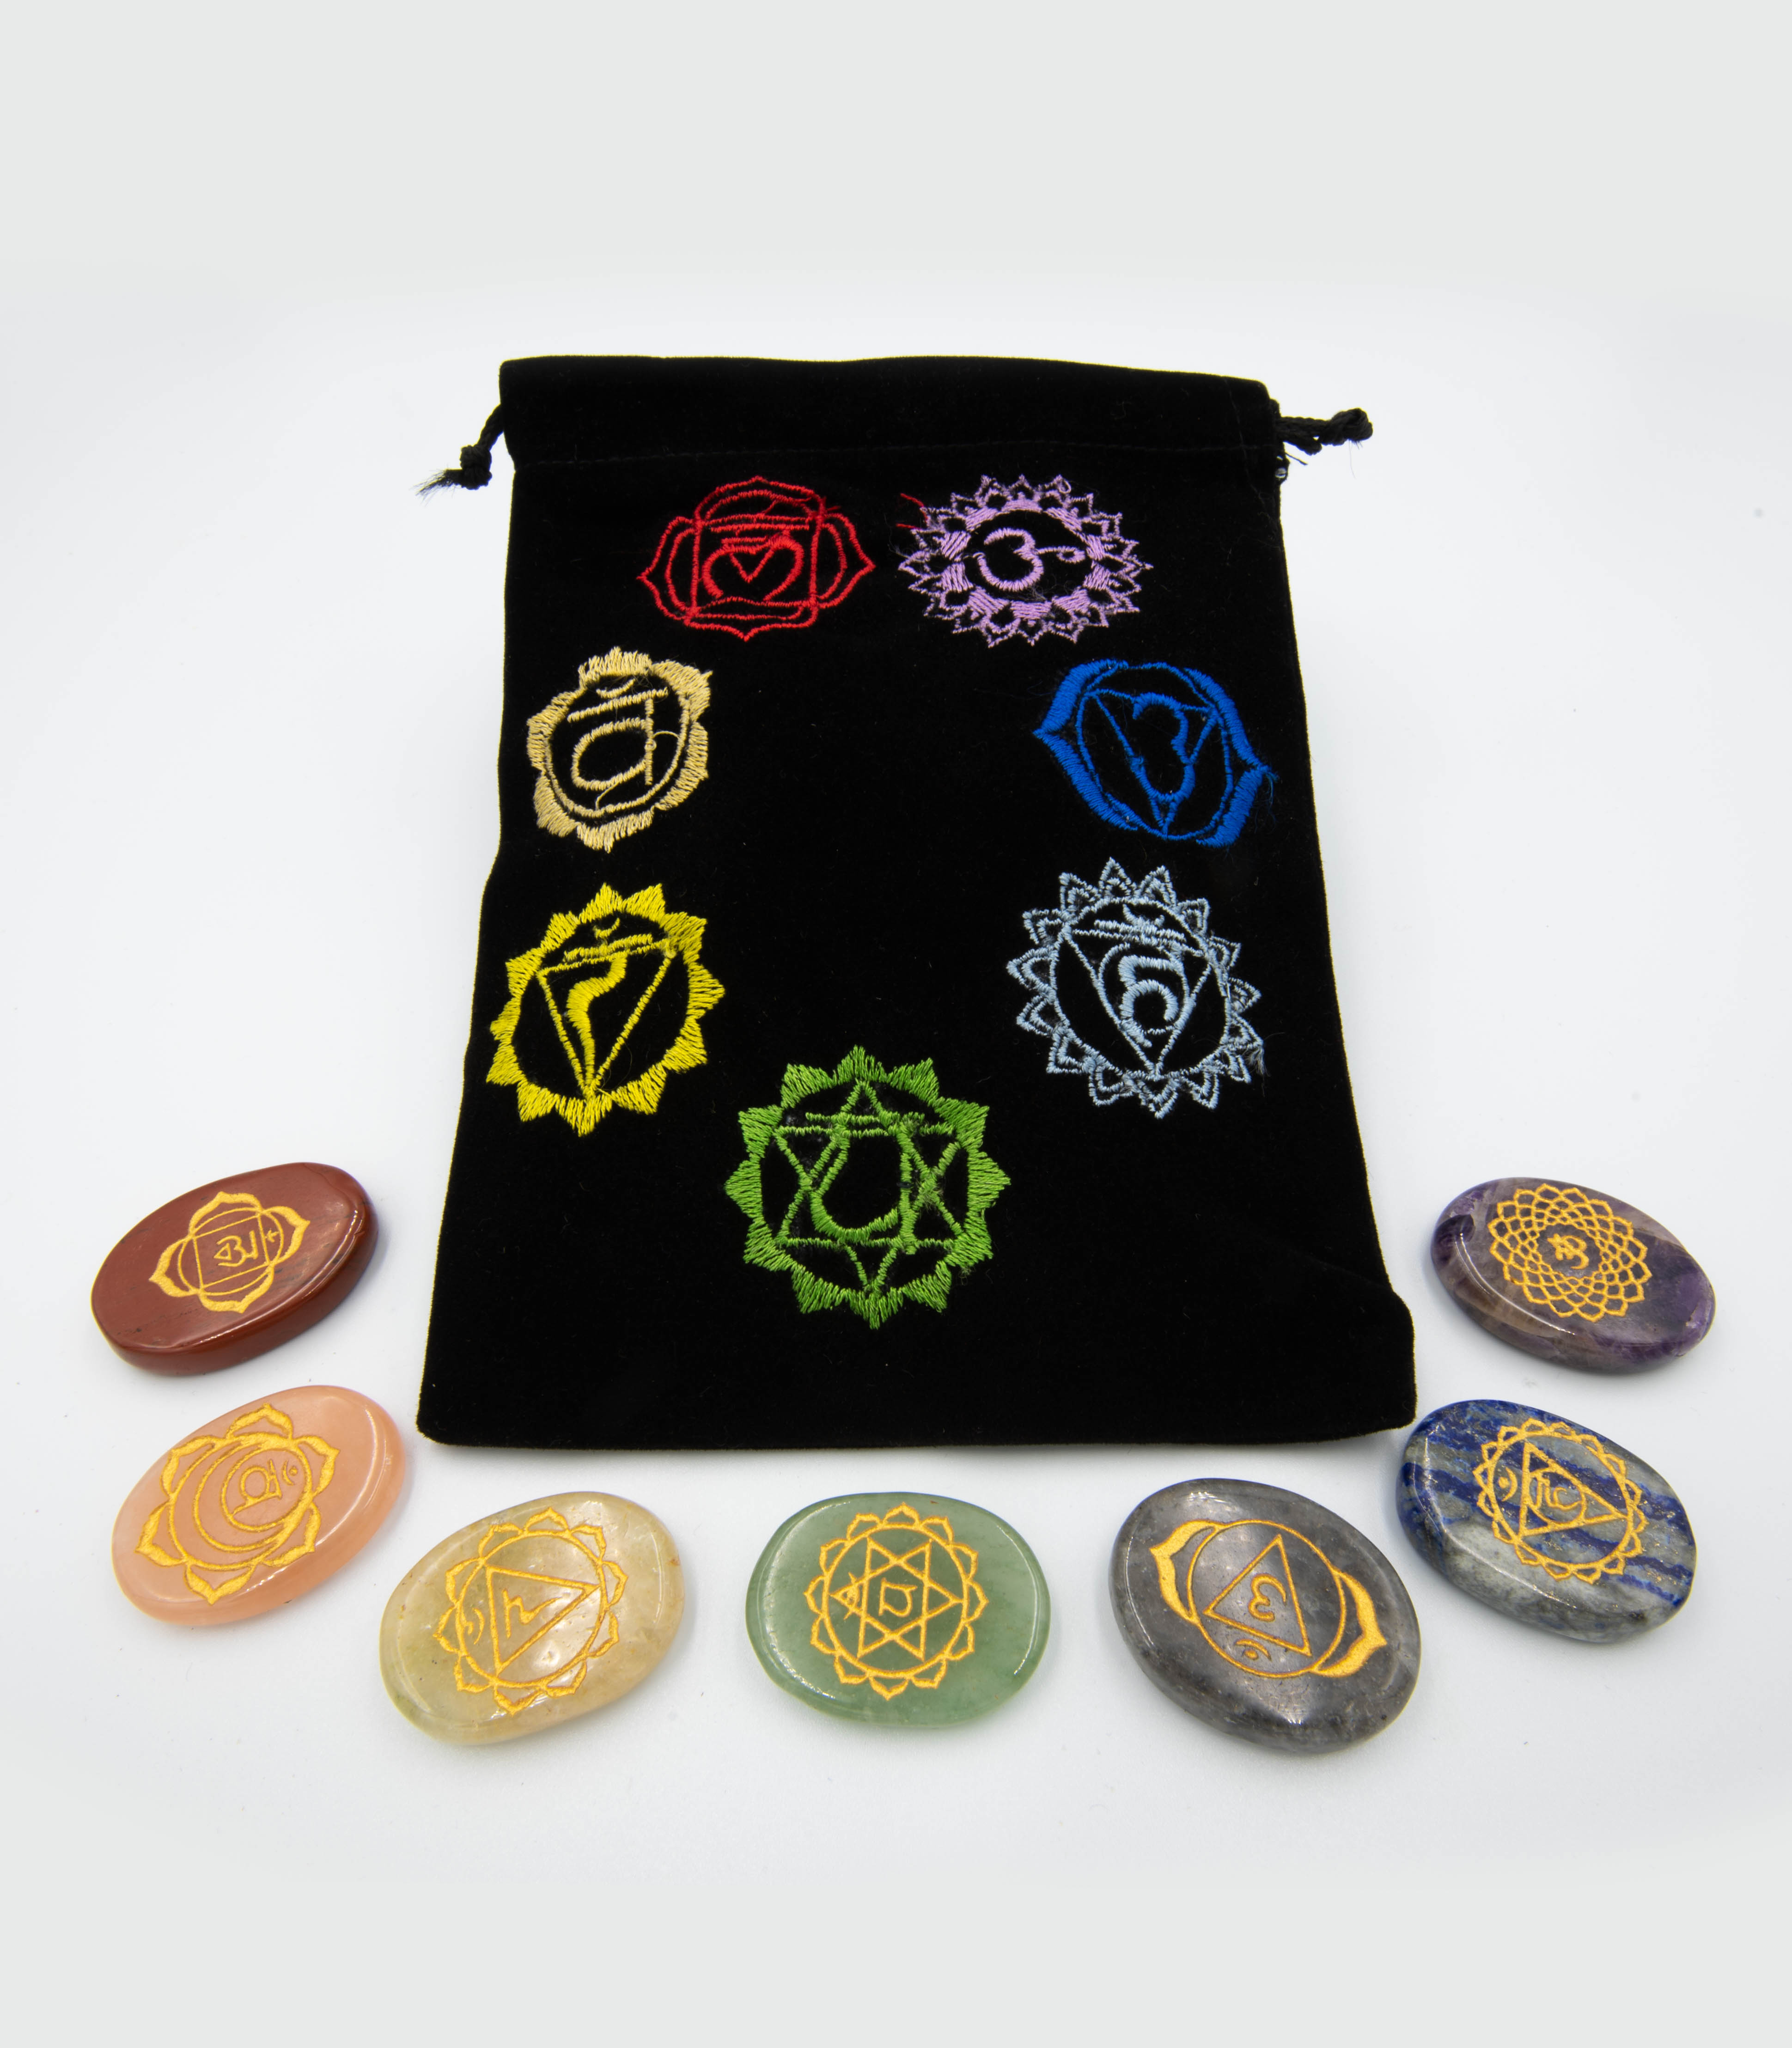 Set of 7 Chakra Stones in Embroidered Pouch